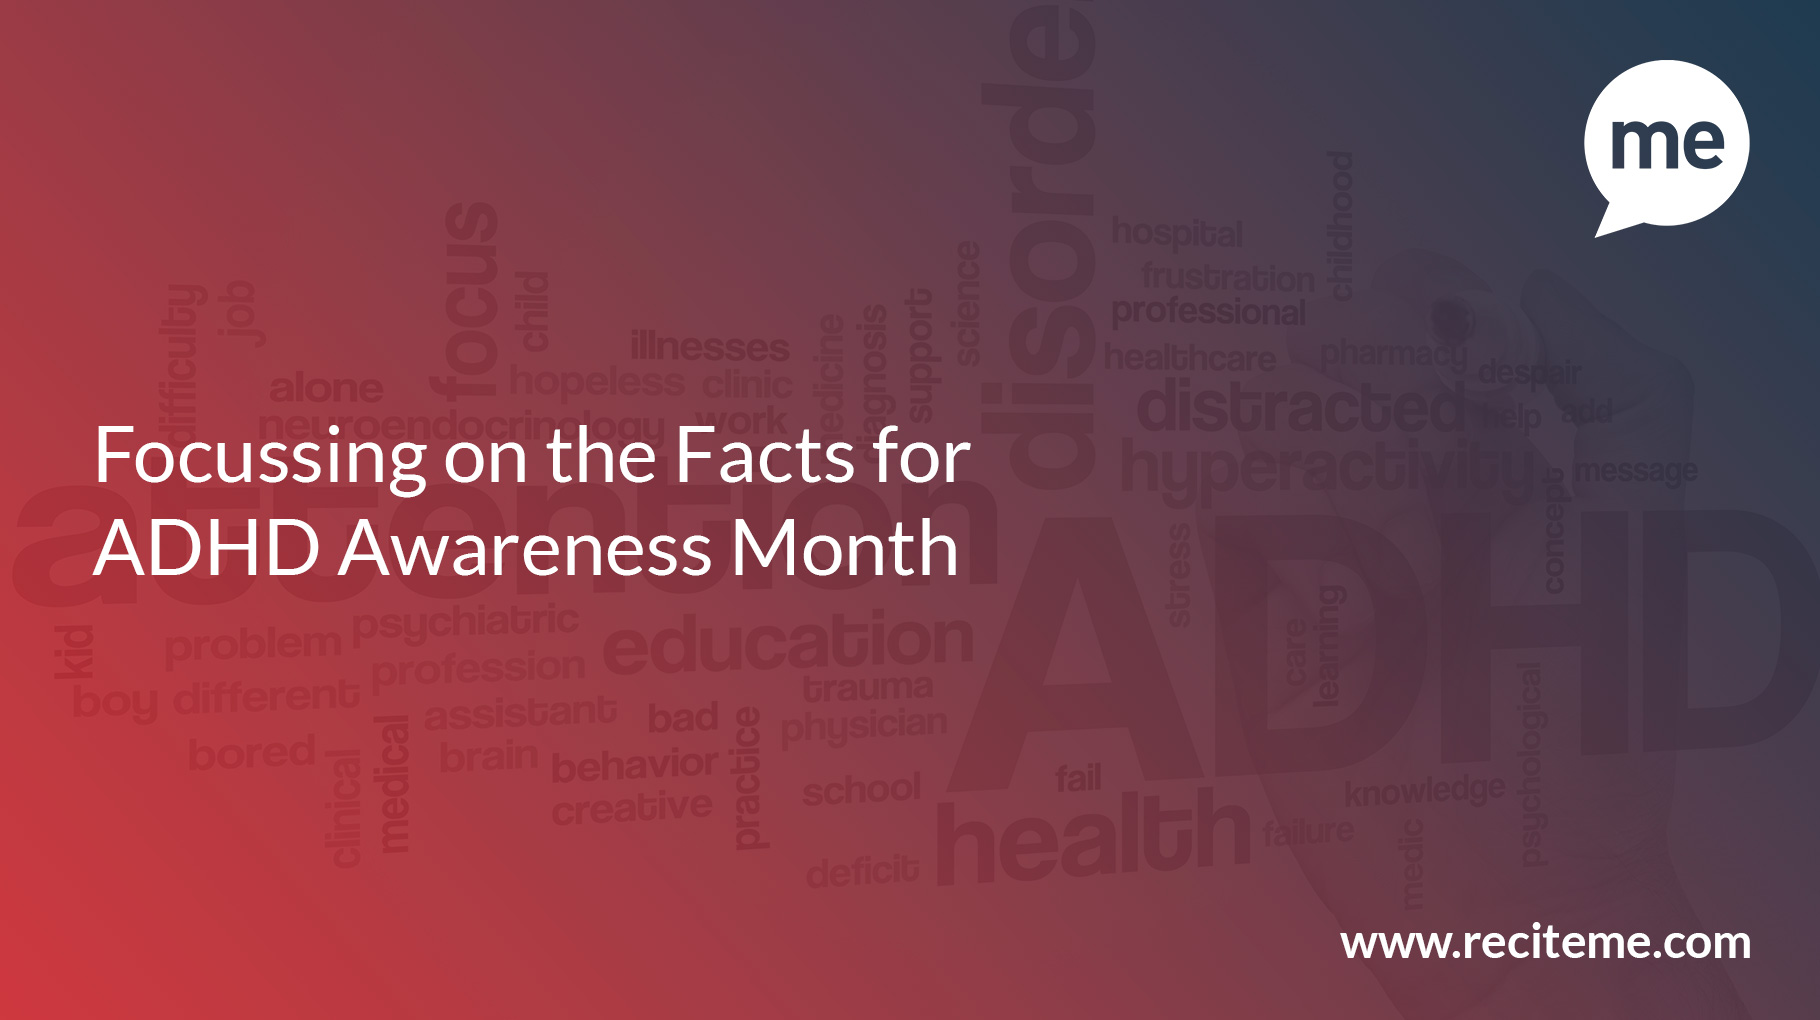 Focussing on the Facts for ADHD Awareness Month